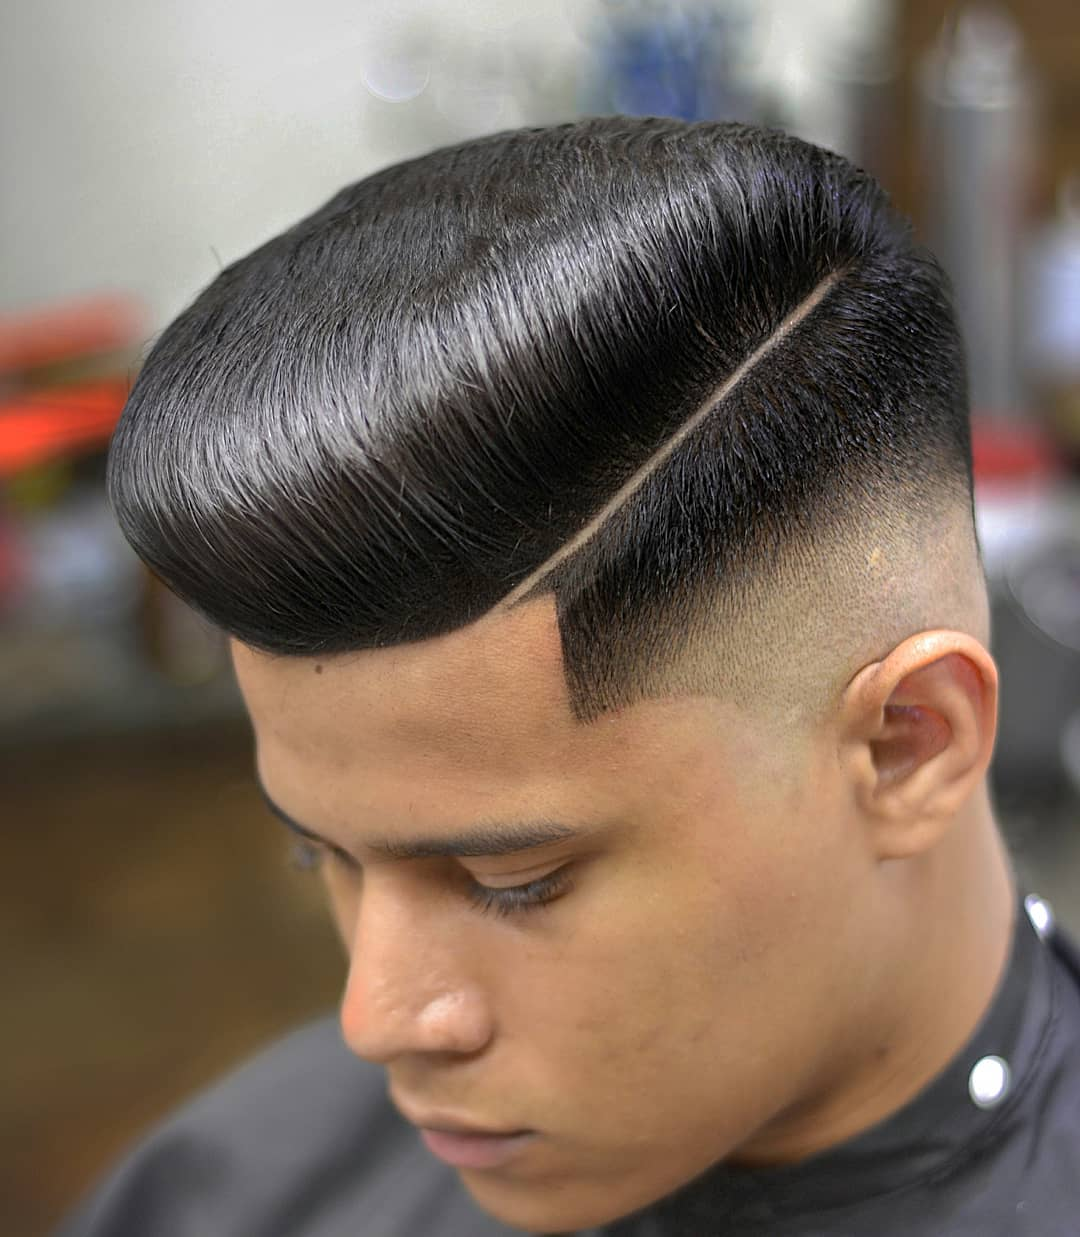 oficial_tubarao_do_corte flat top pomp Popular The Pompadour Haircut